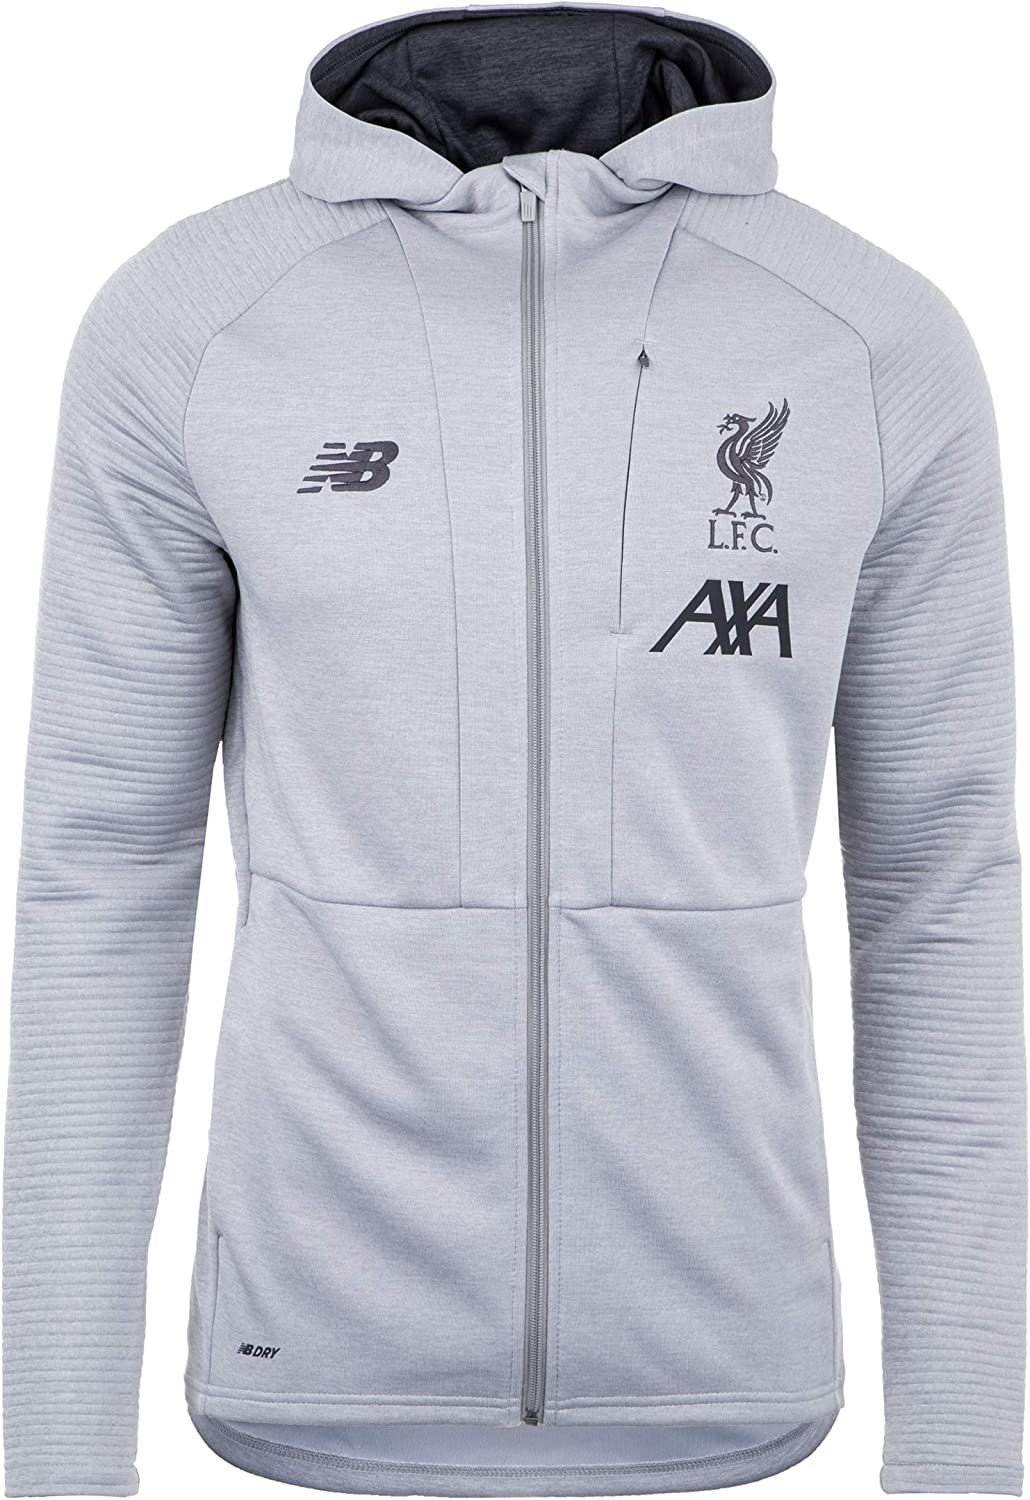 Amazon Com Liverpool Fc Grey Marl Polyester Mens Soccer Training Travel Zip Hoodies 2019 2020 Lfc Official Clothing